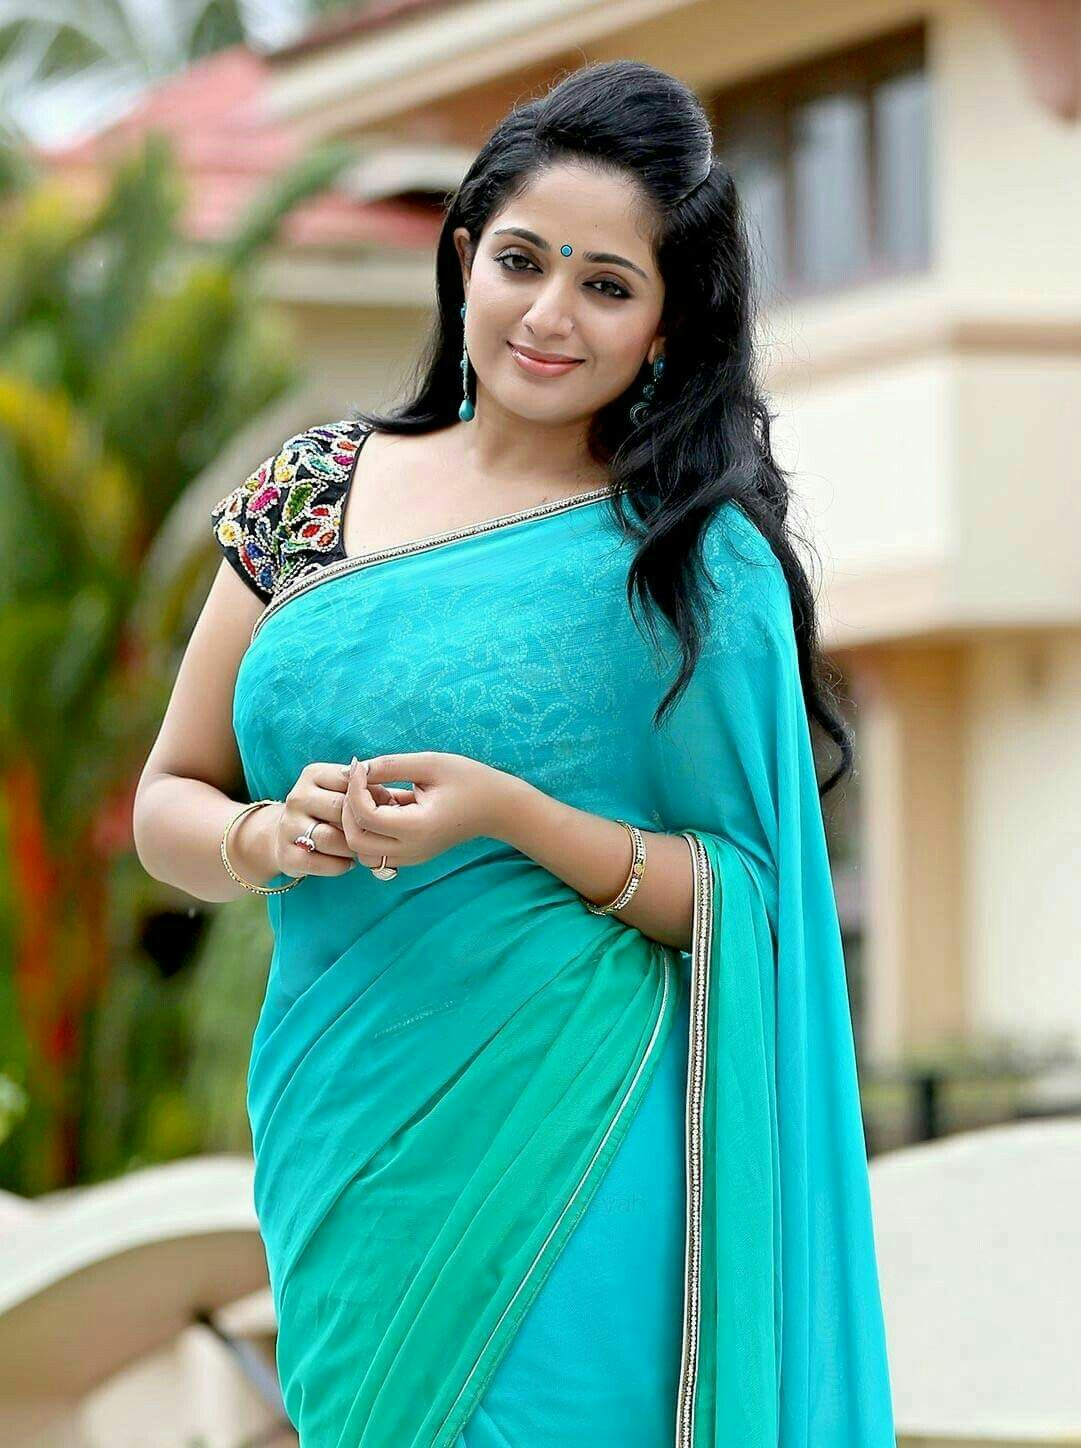 Kavya Madhavan Sex Images - Photo Erotica-4765